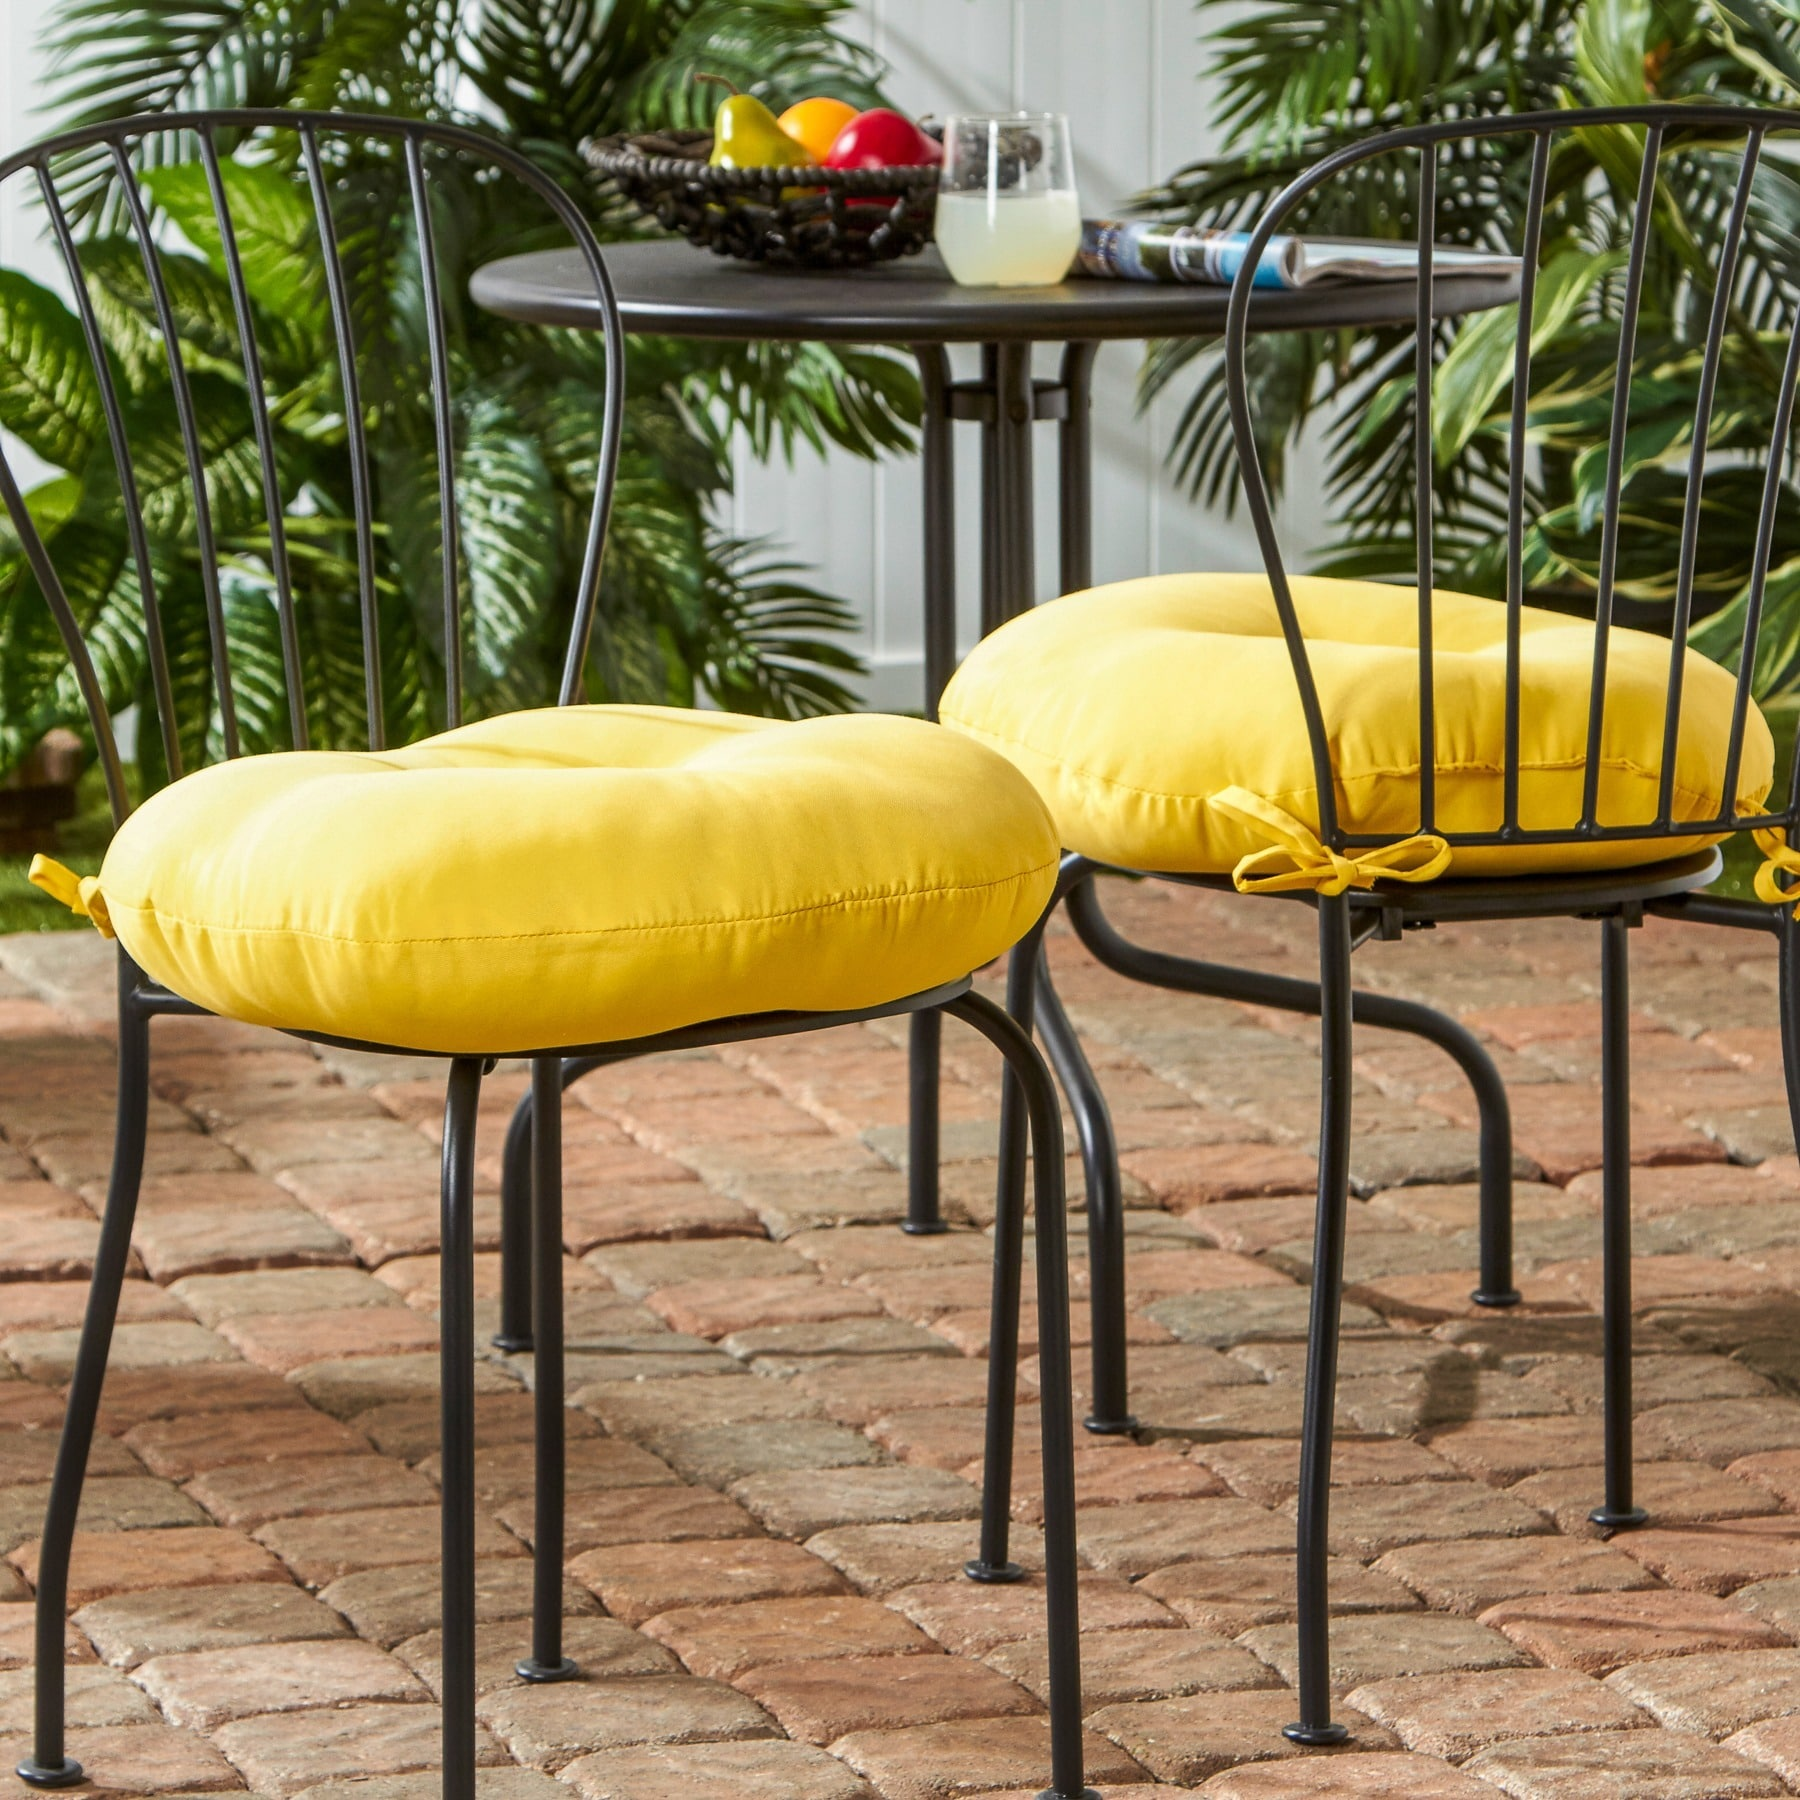 Charmant Greendale Home Fashions 18 Inch Round Outdoor Sunbeam Bistro Chair Cushion  (Set Of 2